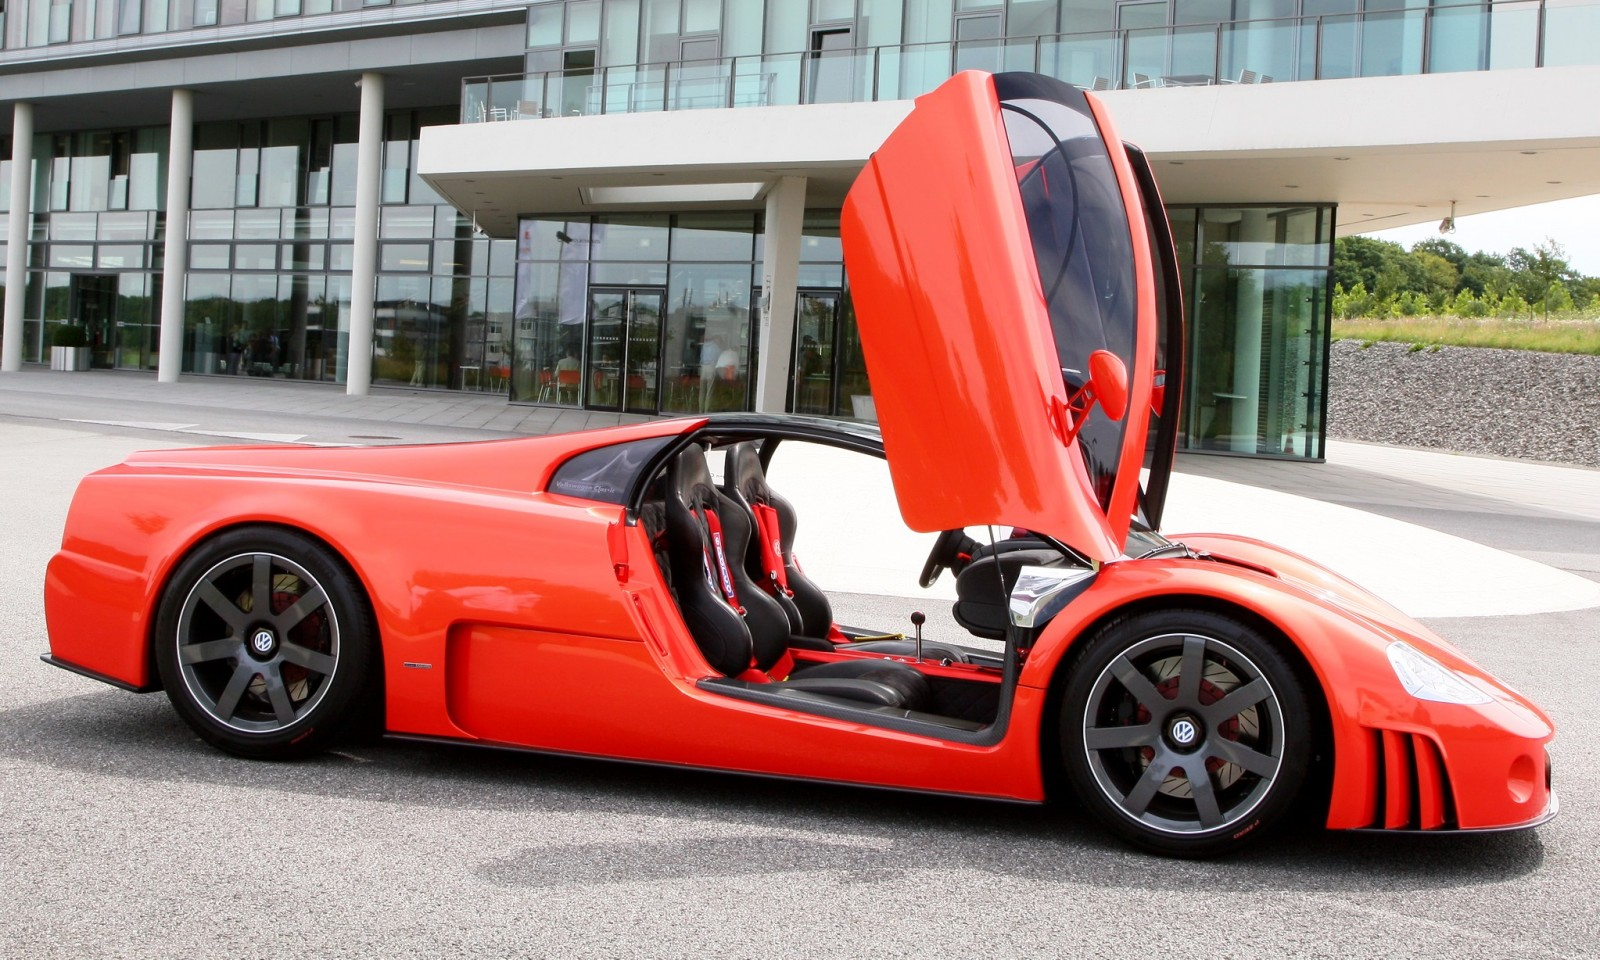 2001 Volkswagen W12 Coupe Concept Introduces Huge Engine and Hypercar Performance to VW Lore 15